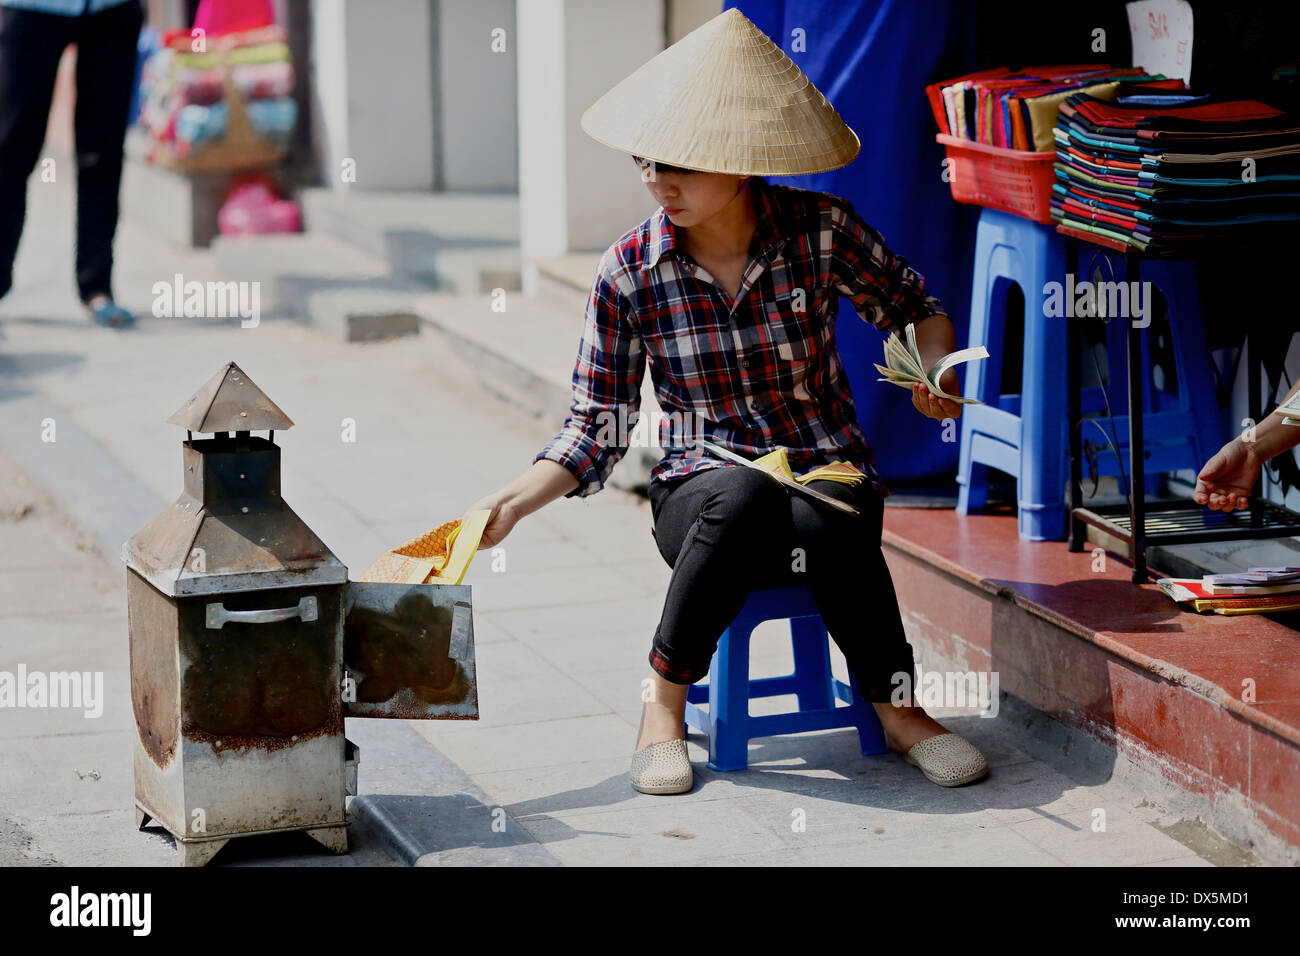 A shopkeeper in Hanoi's old quarter burns  fake money as an offering to the ancestors. Hanoi Vietnam South West Asia - Stock Image